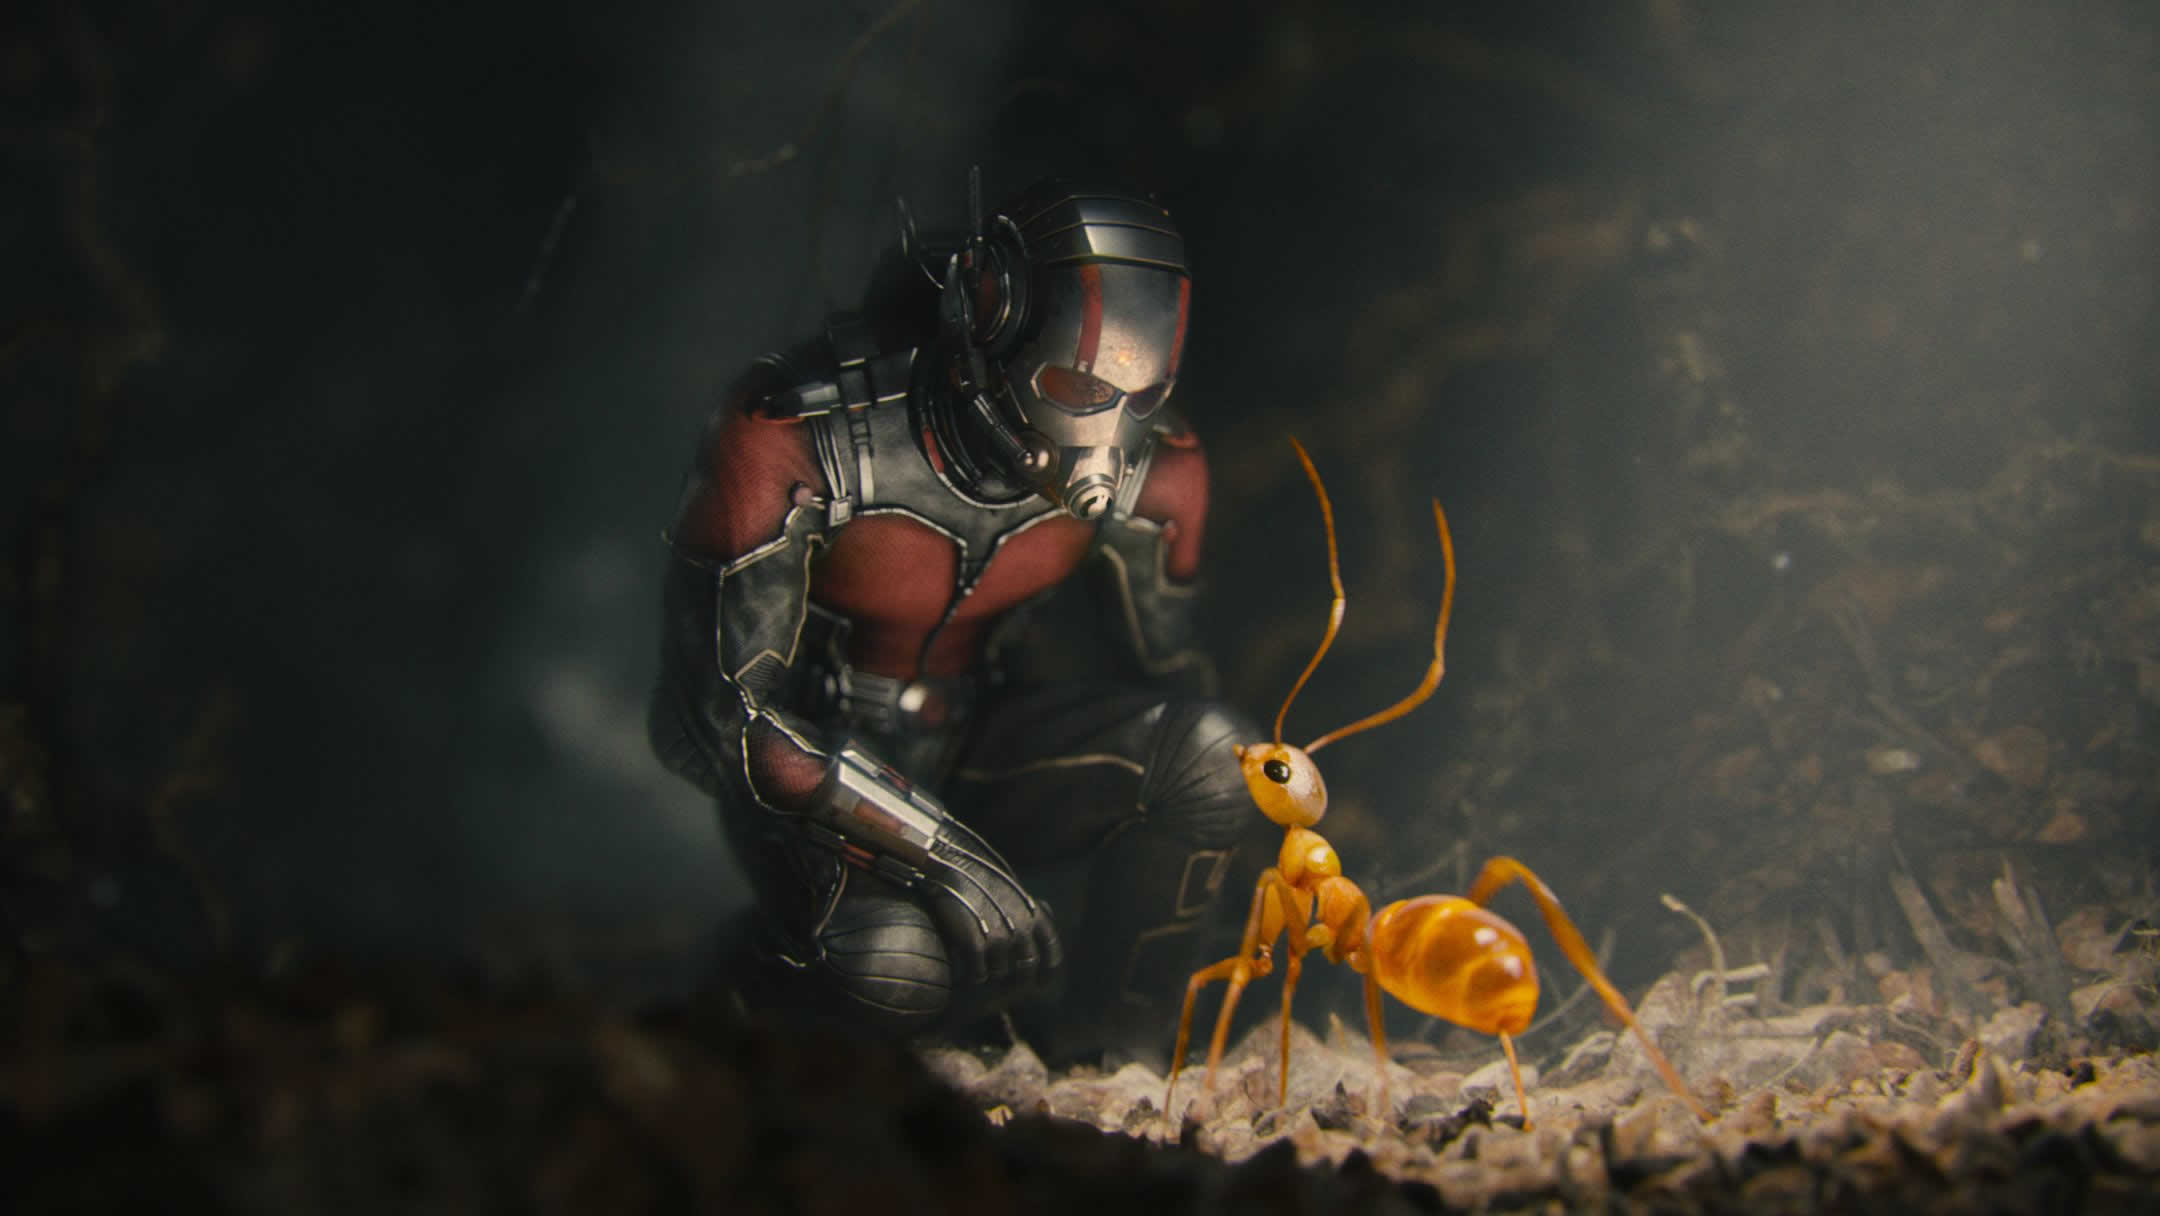 Ant Man Wallpaper Backgrounds 2160x1216